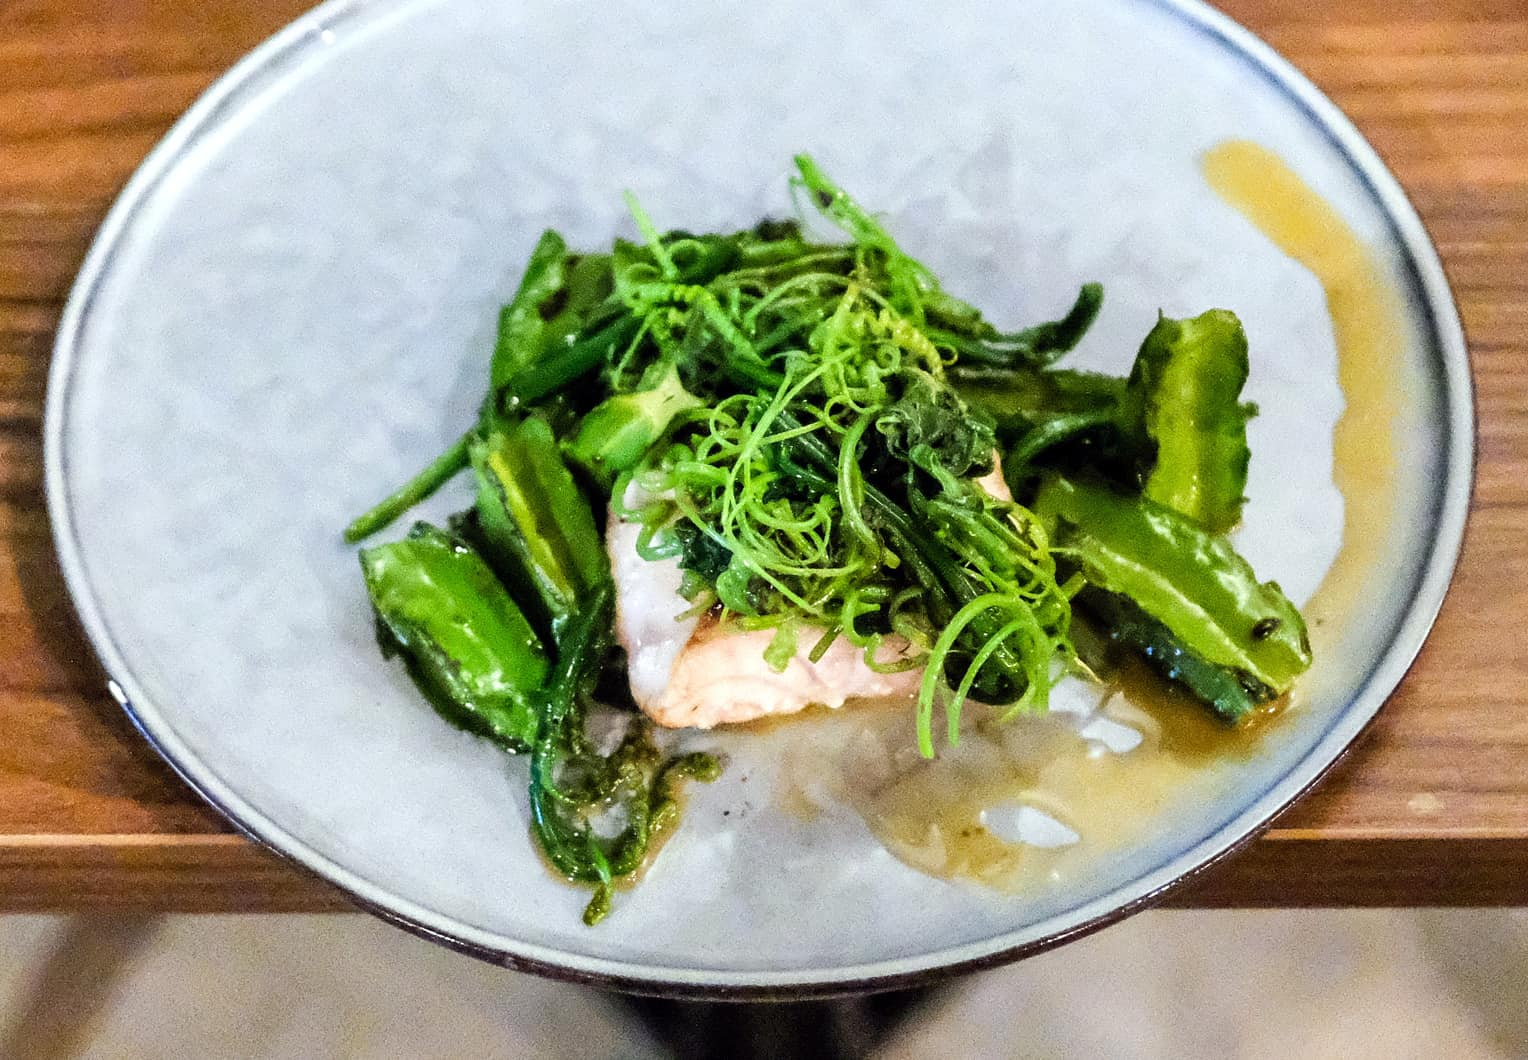 grilled-fish-and-vegetables-best-Malaysian-foods-to-try-in-Kuala-Lumpur-Ember-restaurant-TTDI-Travel-Mermaid-01